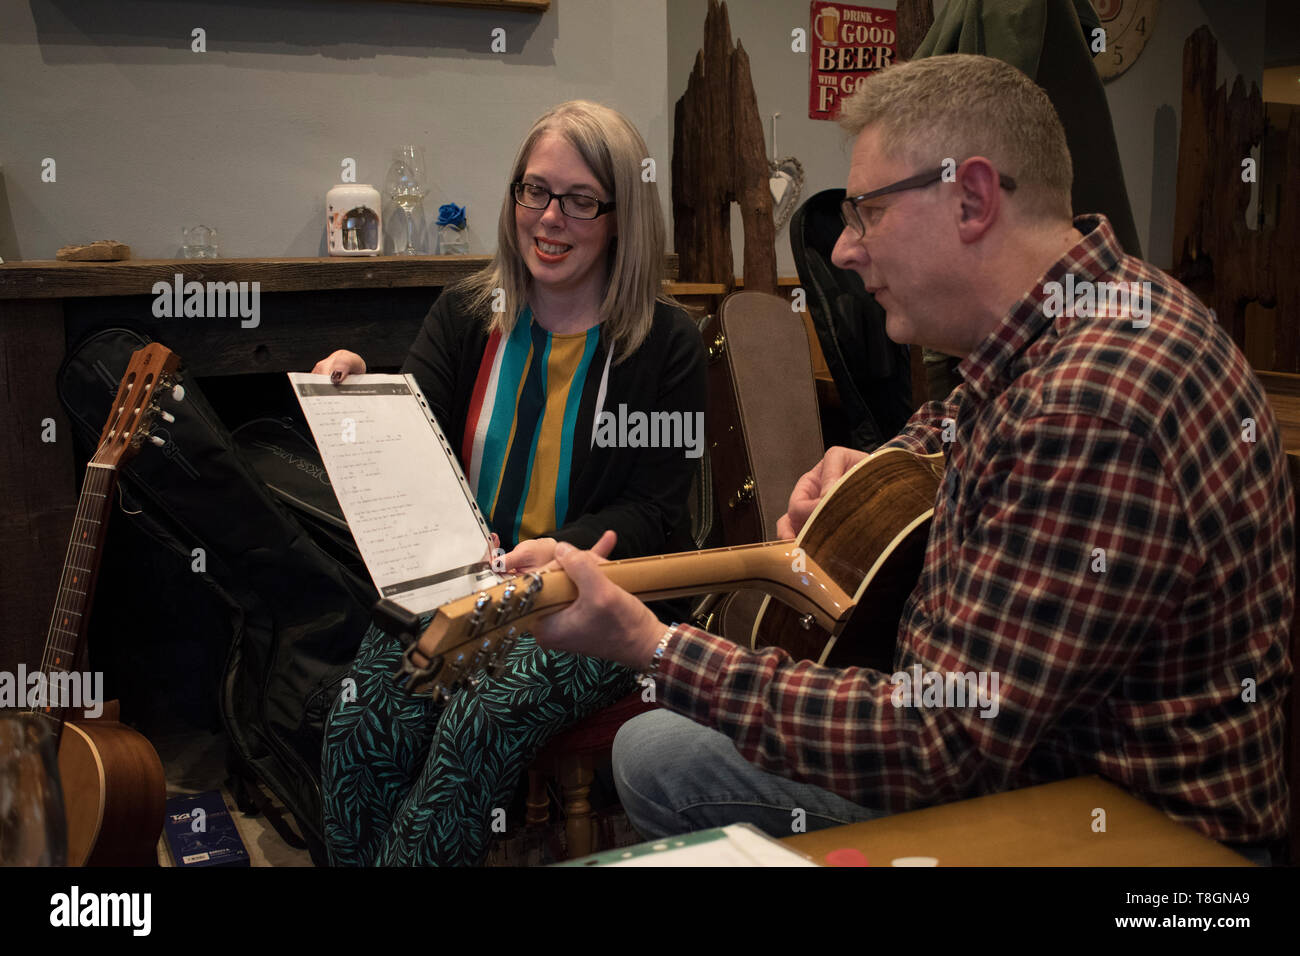 Memory loss cant remember the word and music to a folk song. Girl friend helping out by  holding the music score, song sheet Halifax pub Yorkshire 2010s 2019 UK HOMER SYKES - Stock Image